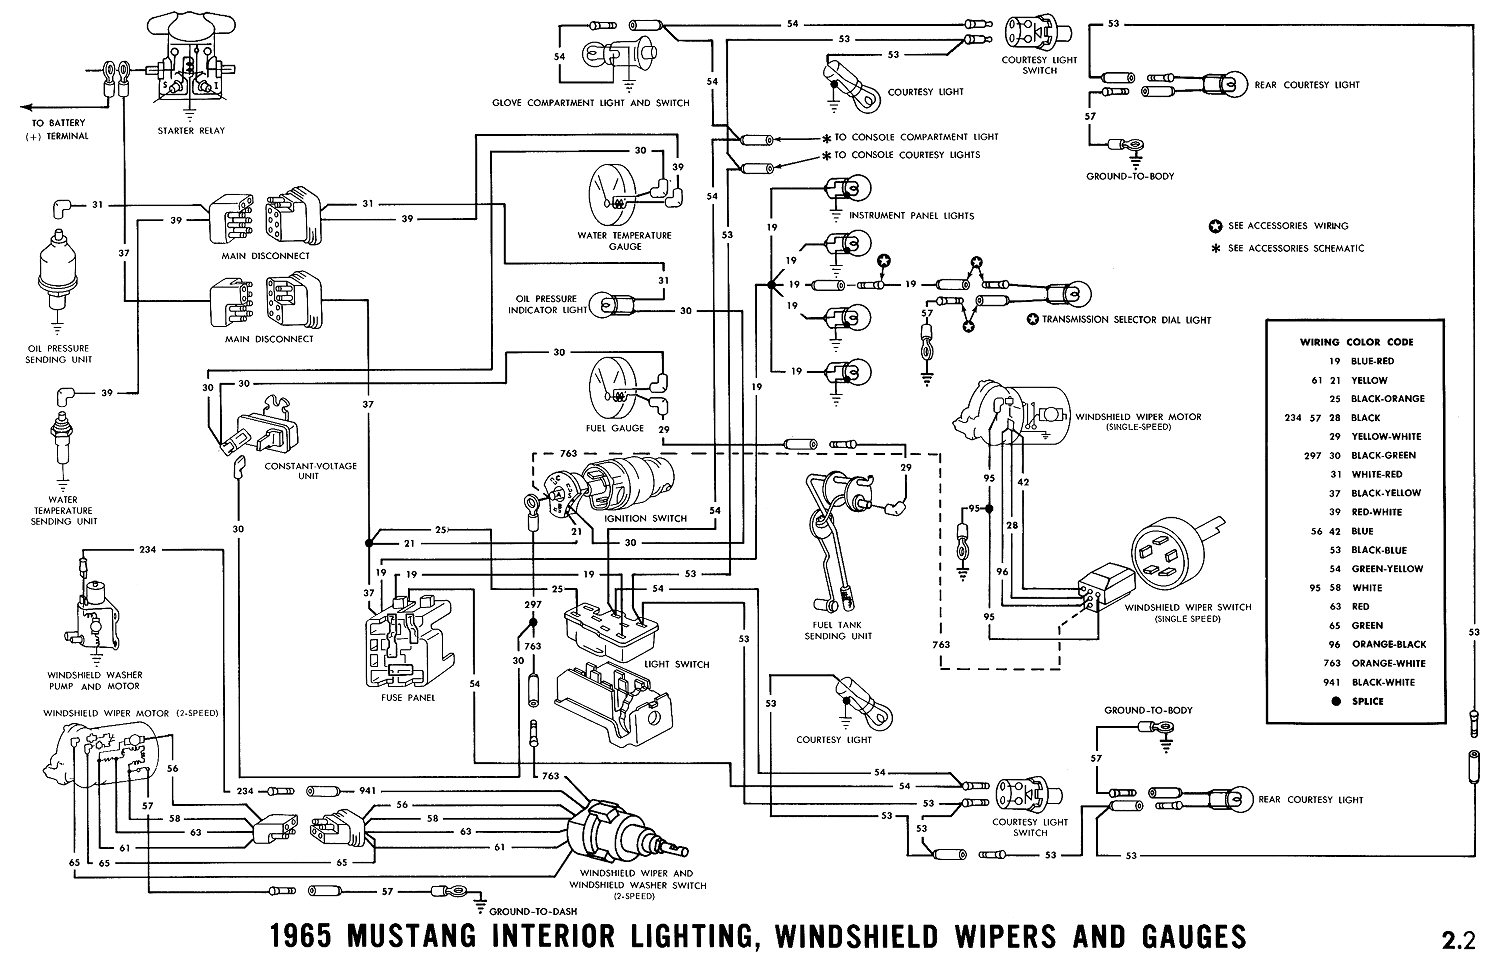 1940 Cadillac Wiring Diagram Reinvent Your Diagrams 1968 Dash Detailed Schematics Rh Lelandlutheran Com Fuel Level